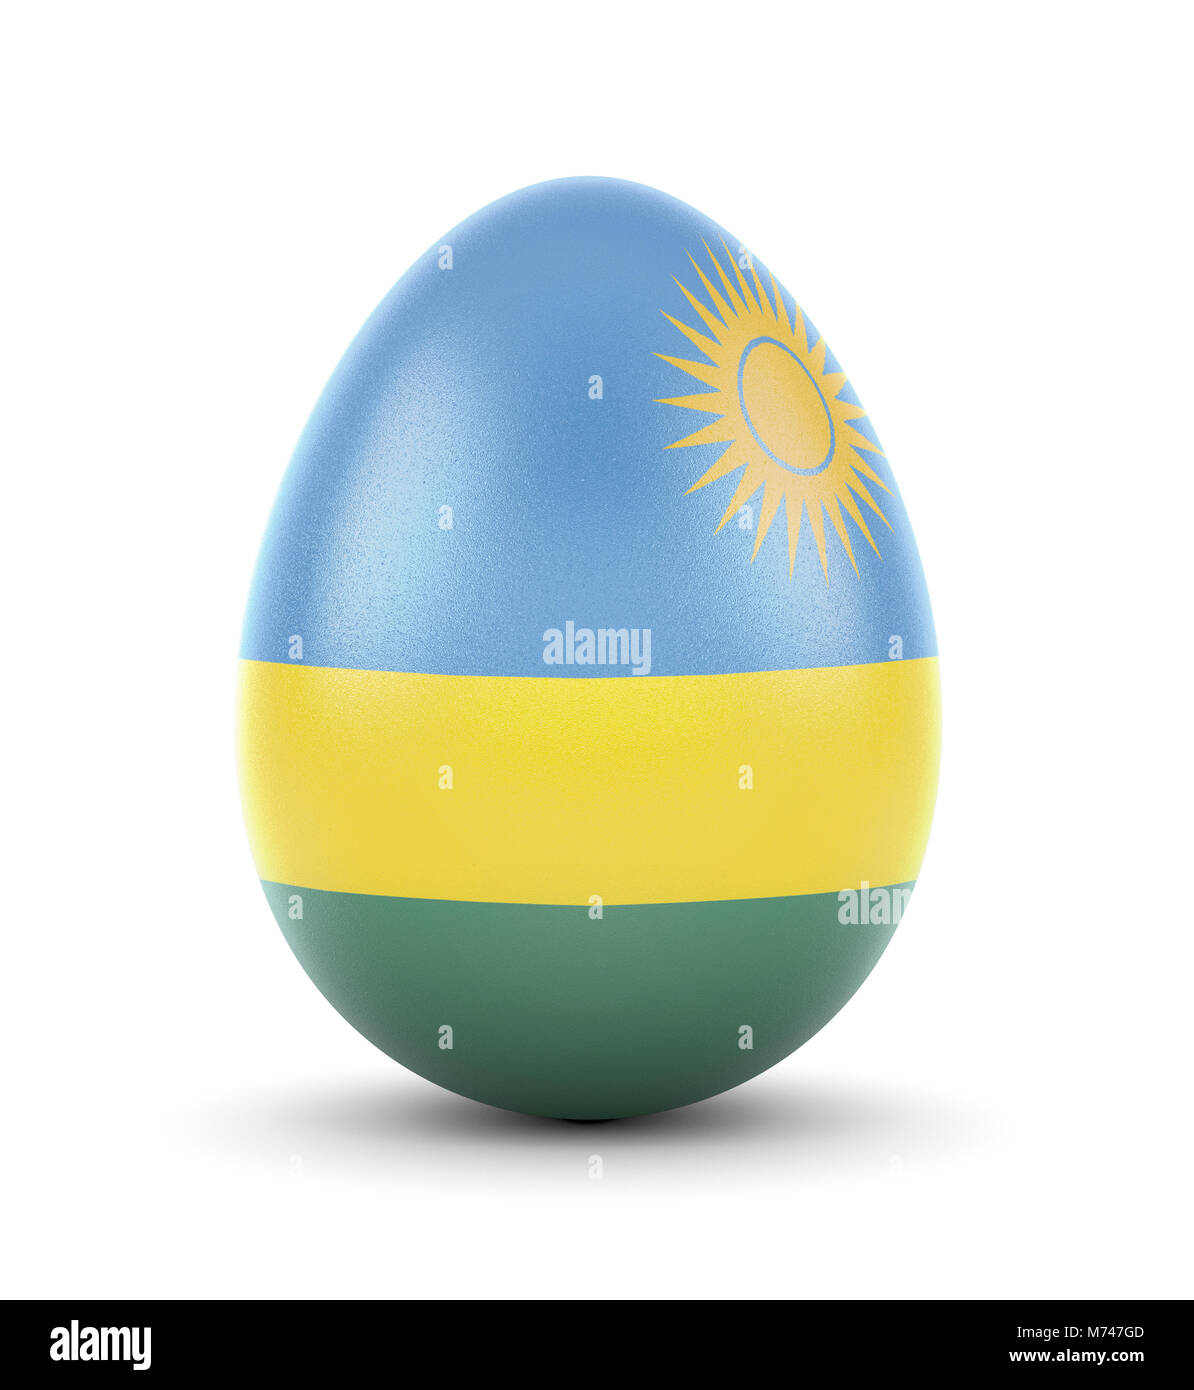 High quality realistic rendering of an glossy egg with the flag of Rwanda.(series) - Stock Image